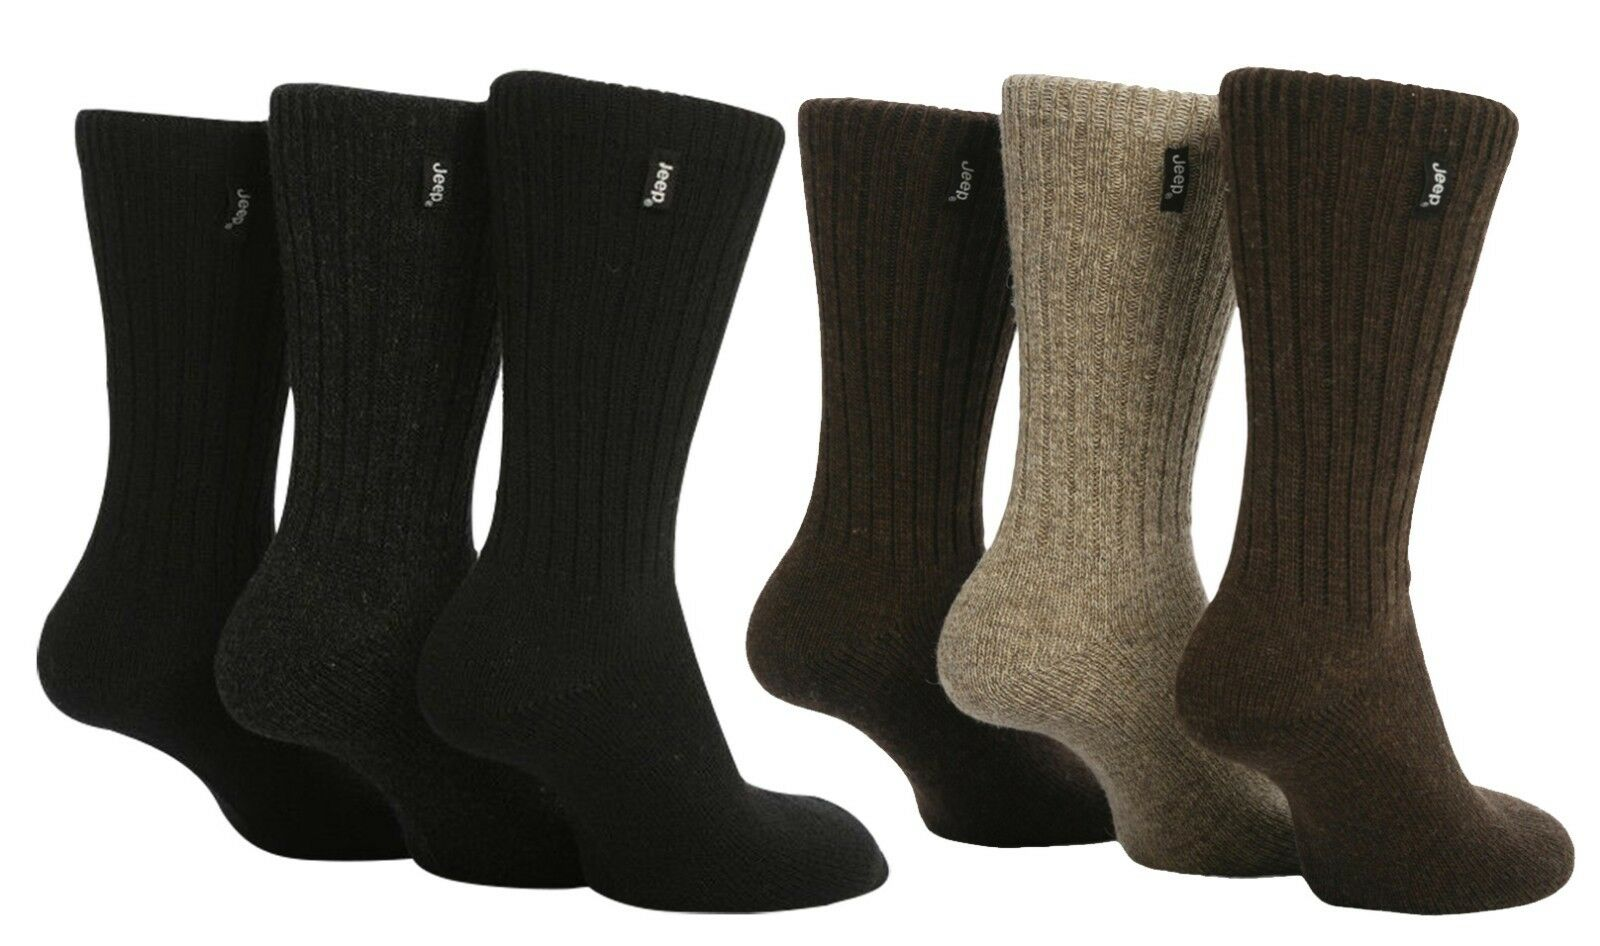 Jeep - 3 Pack Mens Thick Black Brown Heavy Wool Blend Knit Hiking Boot Socks